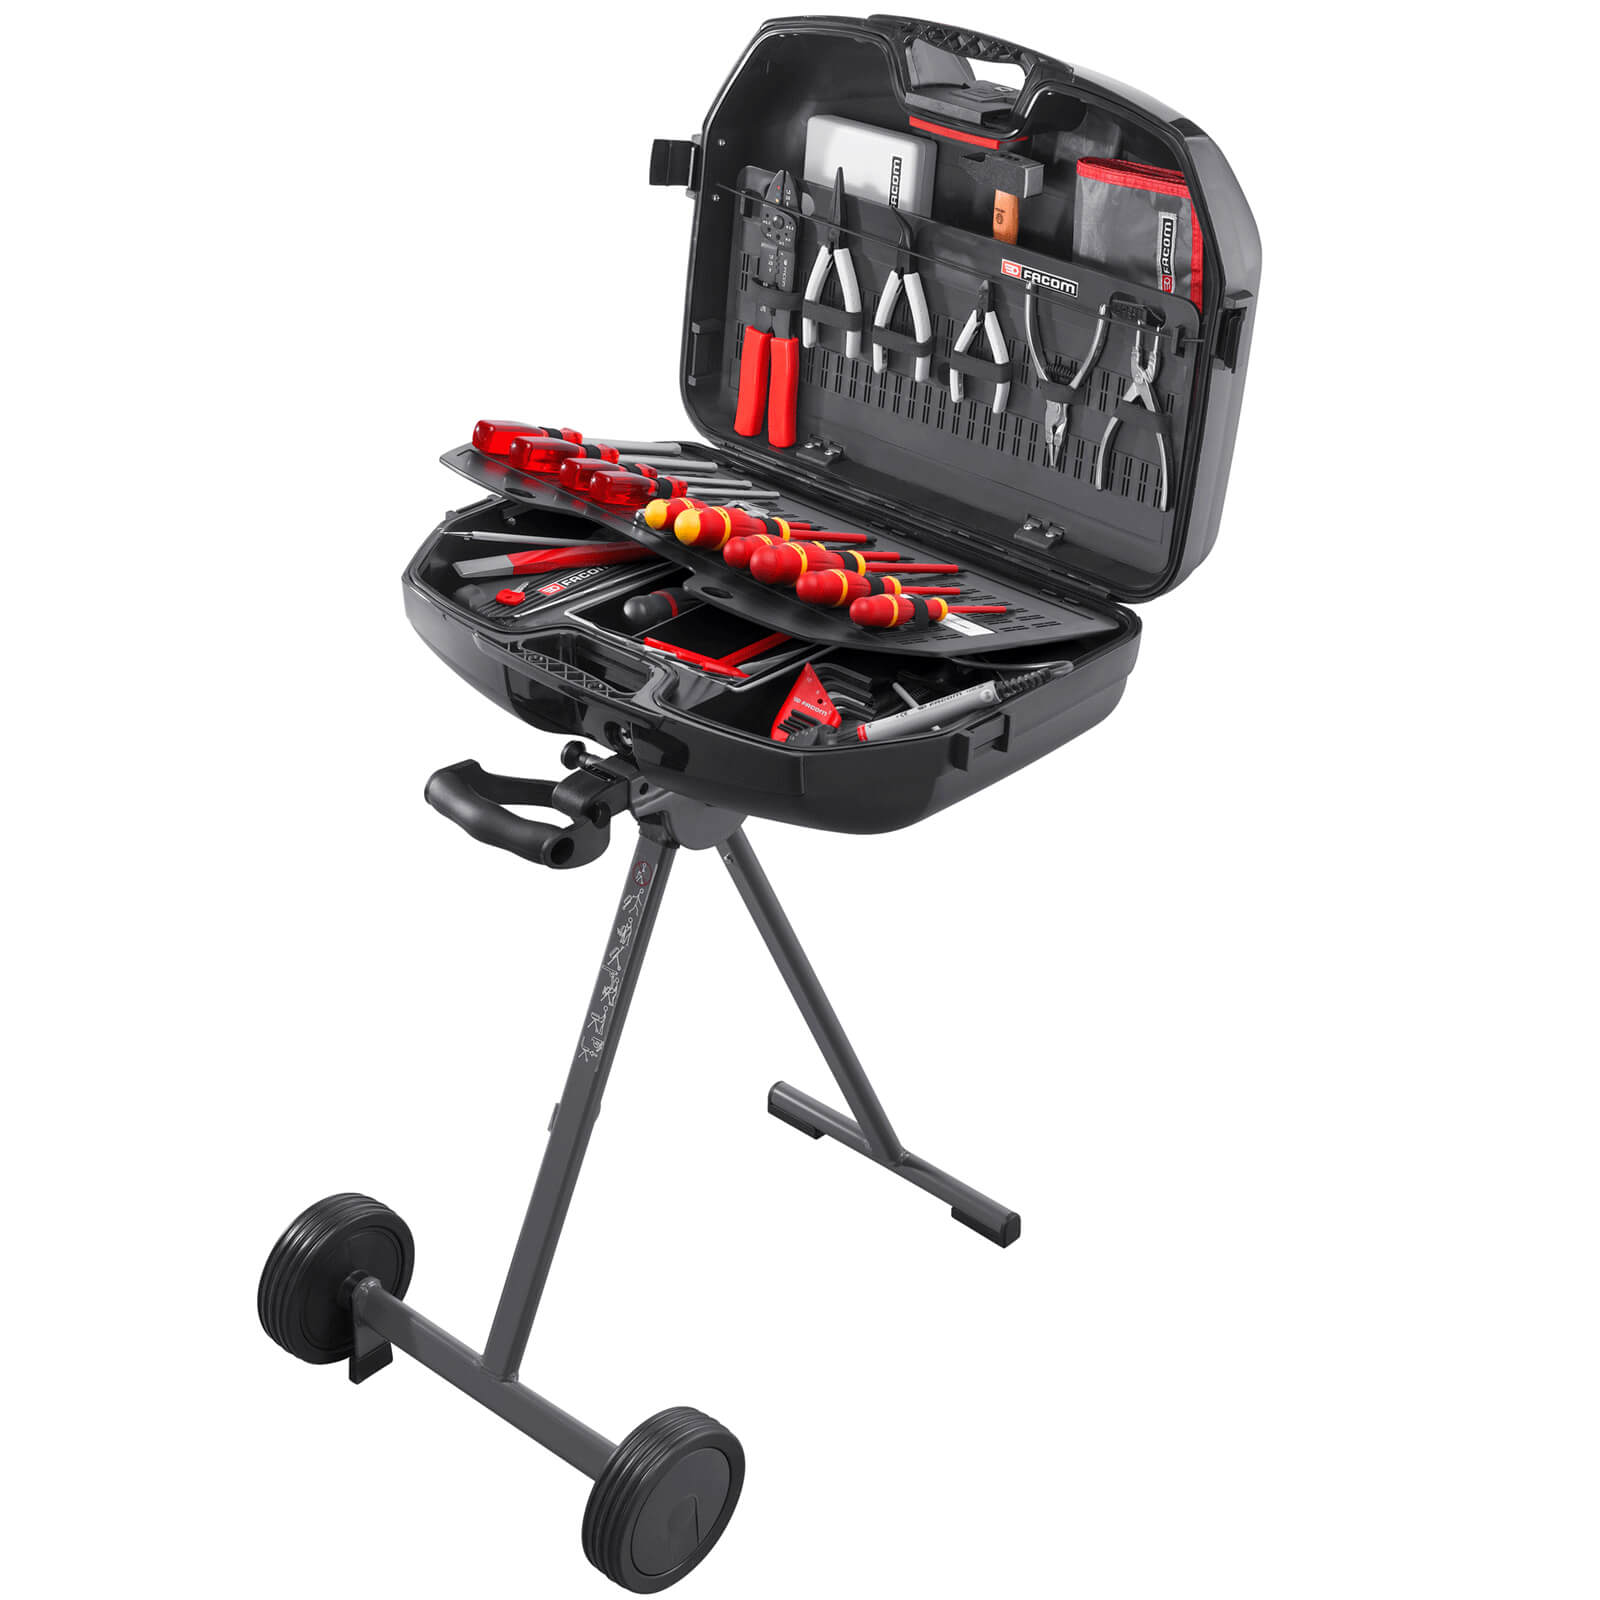 Image of Facom Trolley & Tool Case + 122 Piece Service Tool Set